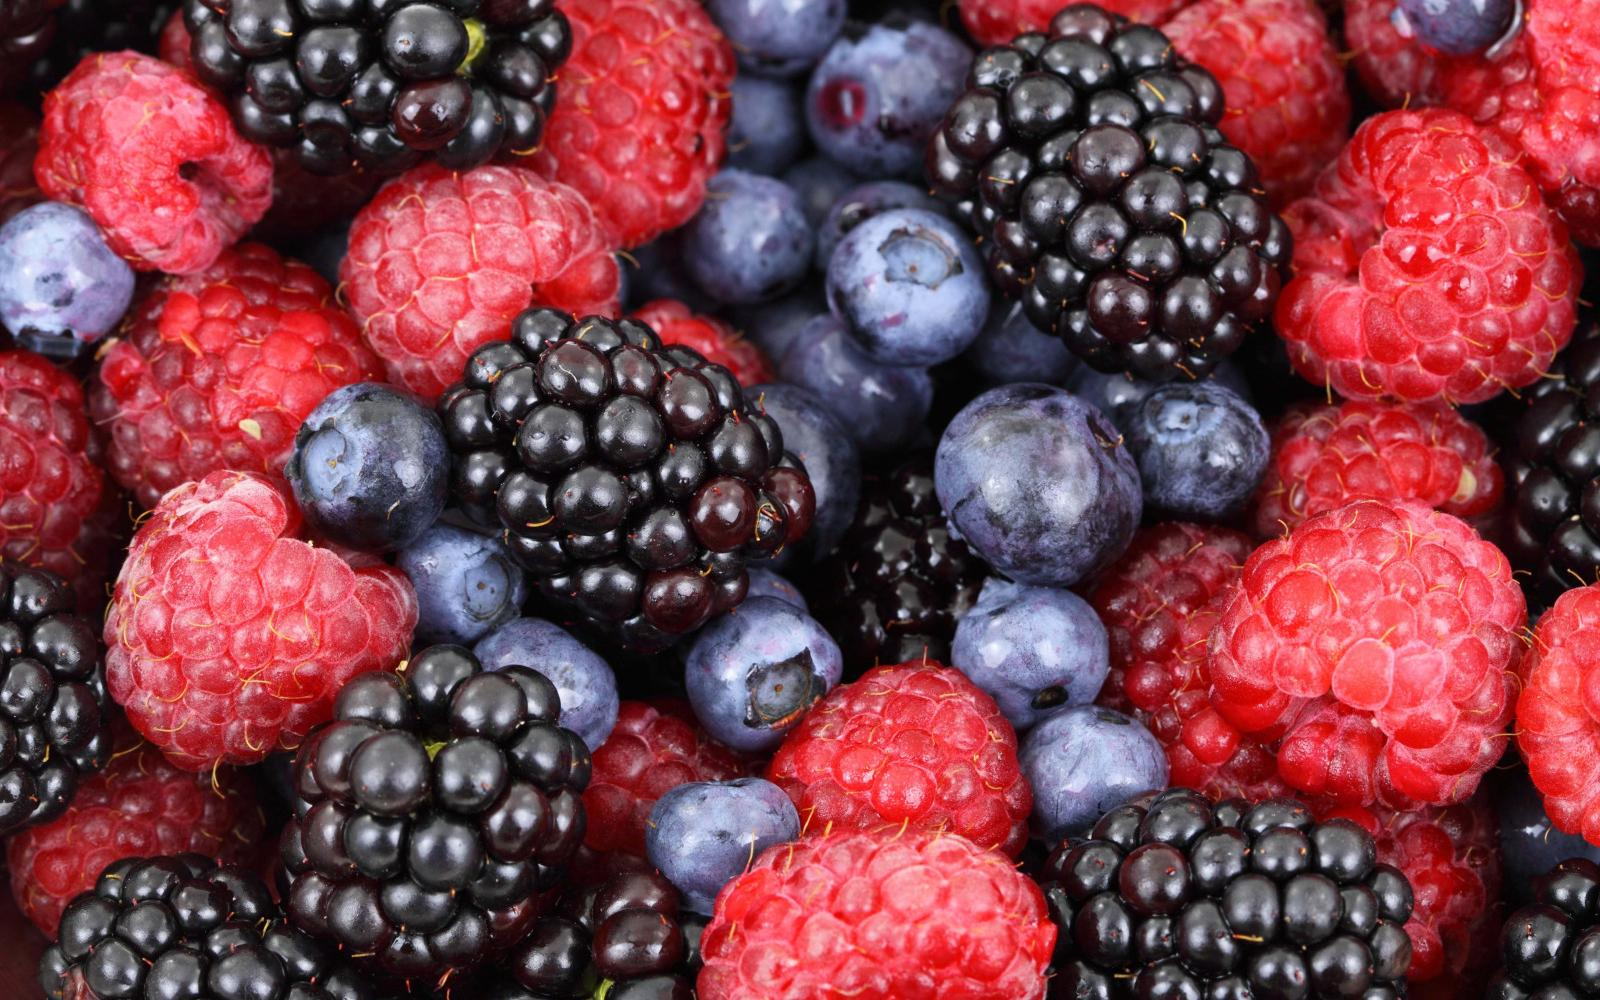 Bring out the fruity flavours in your Gin by snacking on fresh berries! Photo: Pxhere